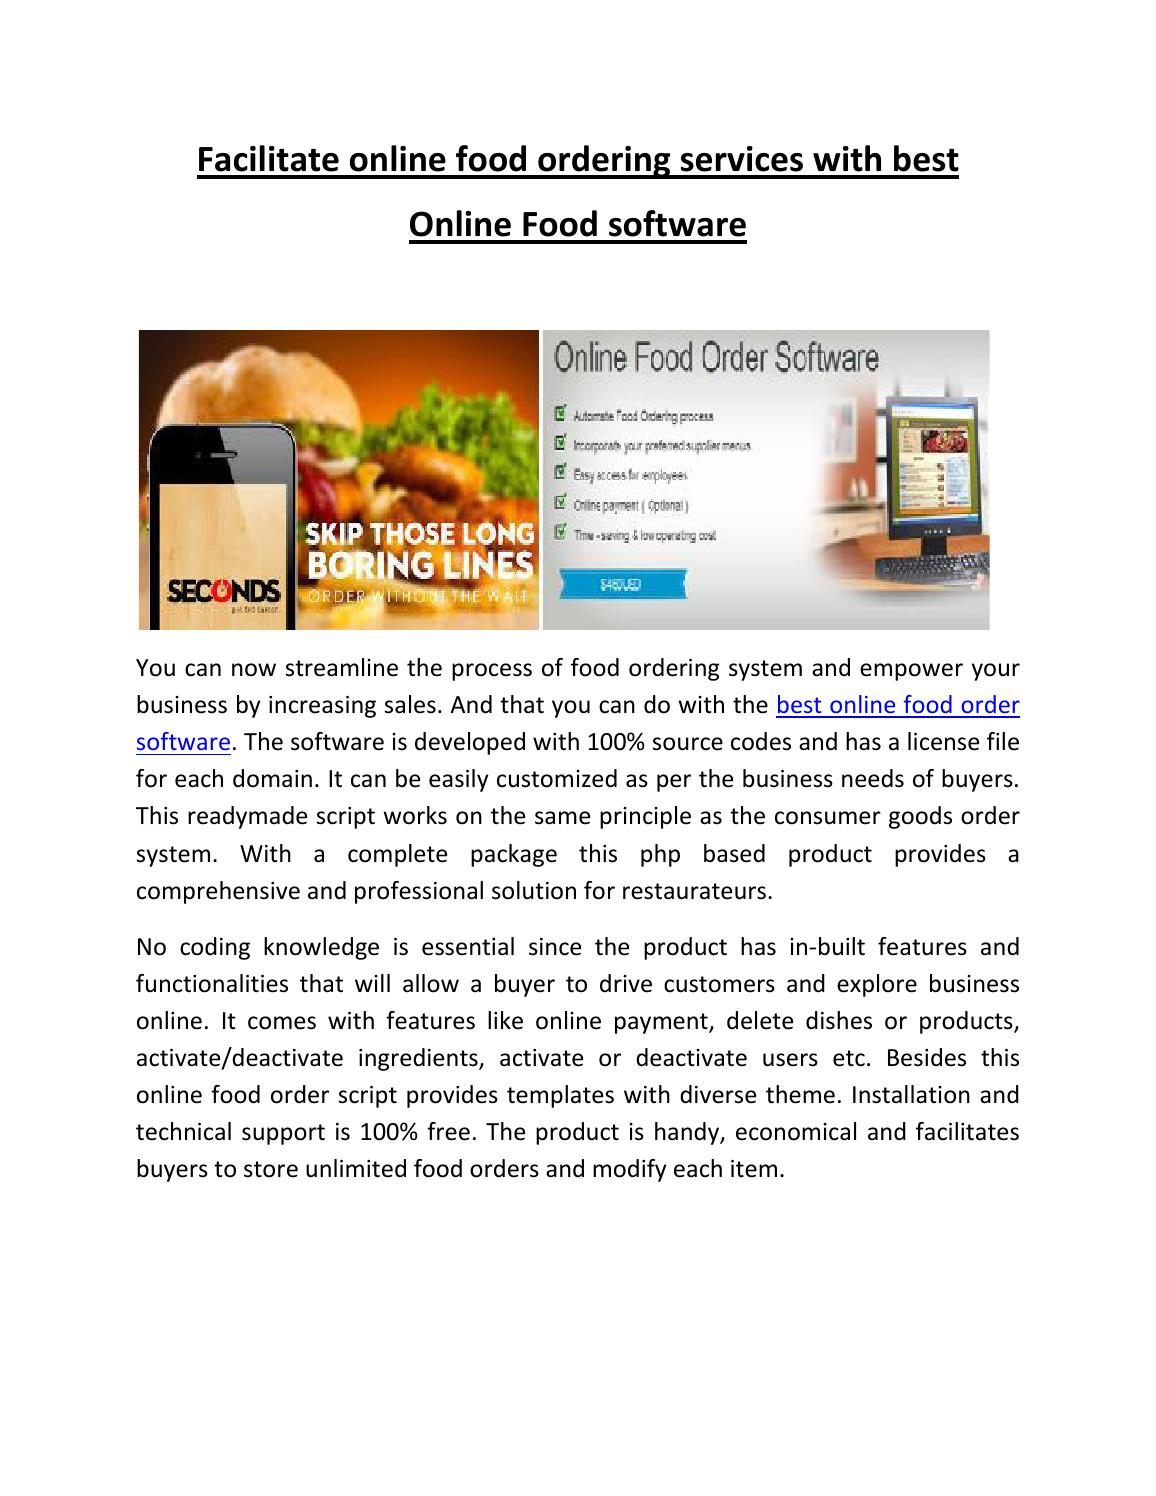 Online Food Order Software by Popularclones - issuu